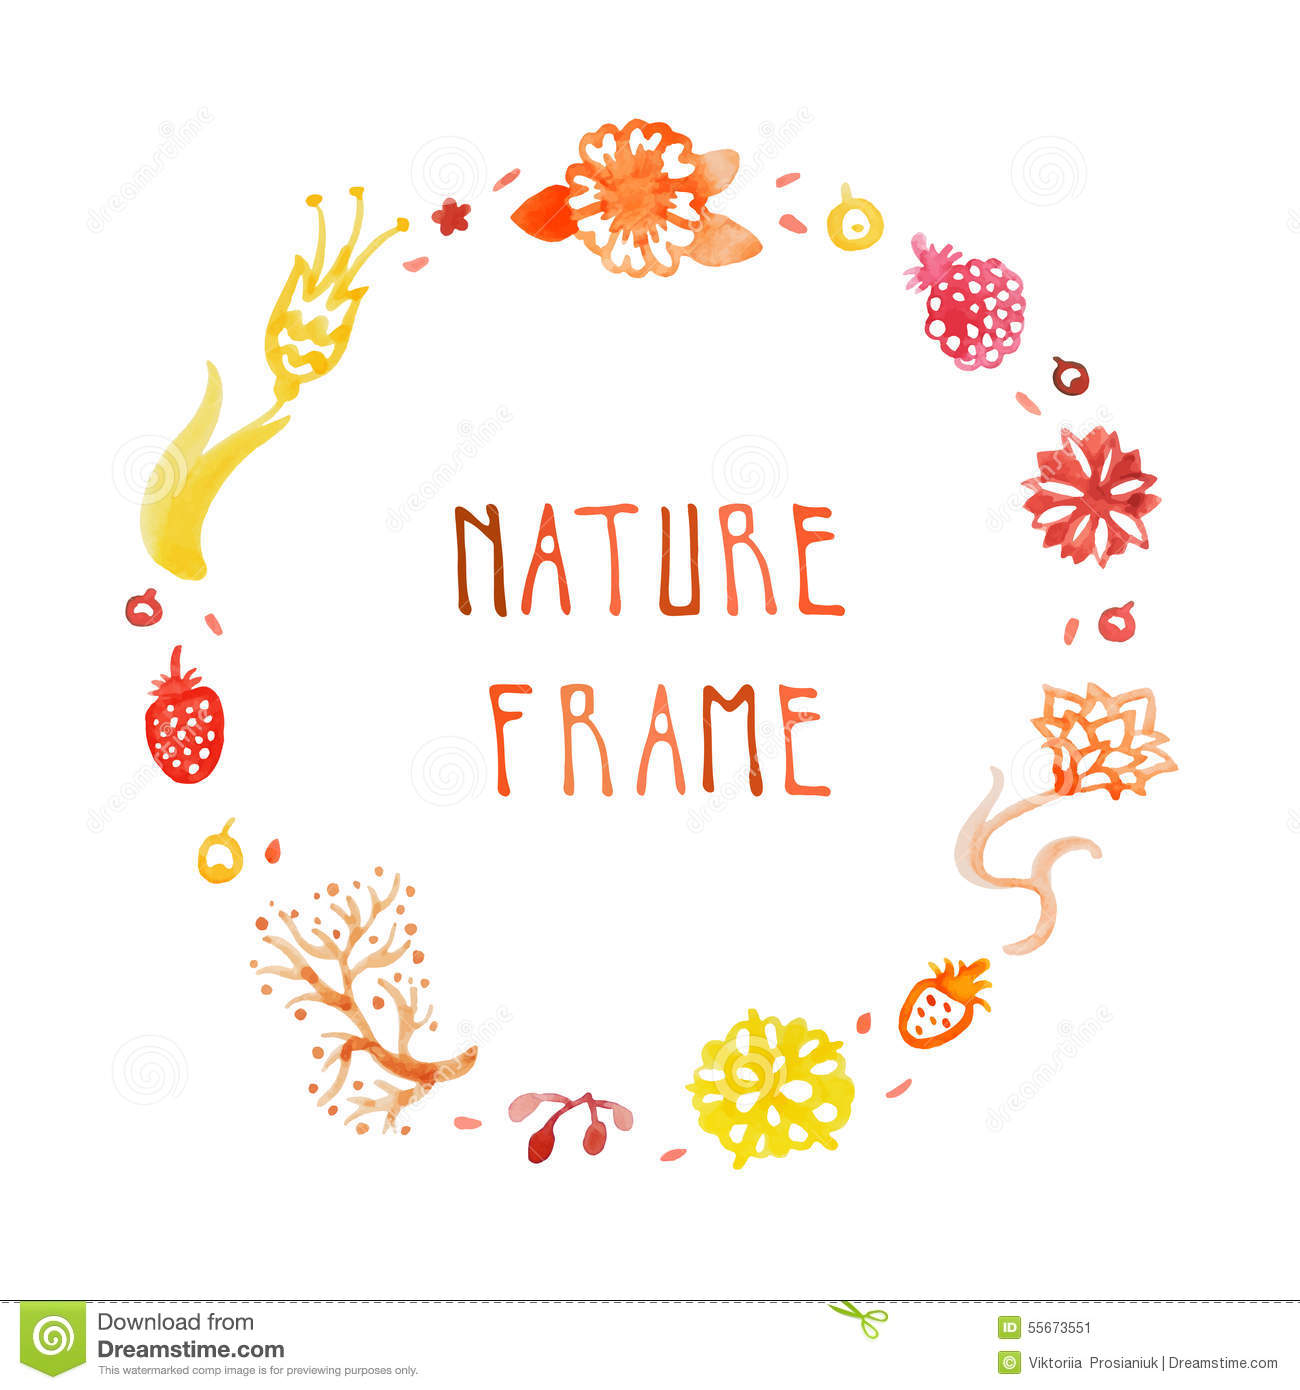 Watercolor nature vector frame with handwritten text with flowers, berries and plants (orange, red, yellow).